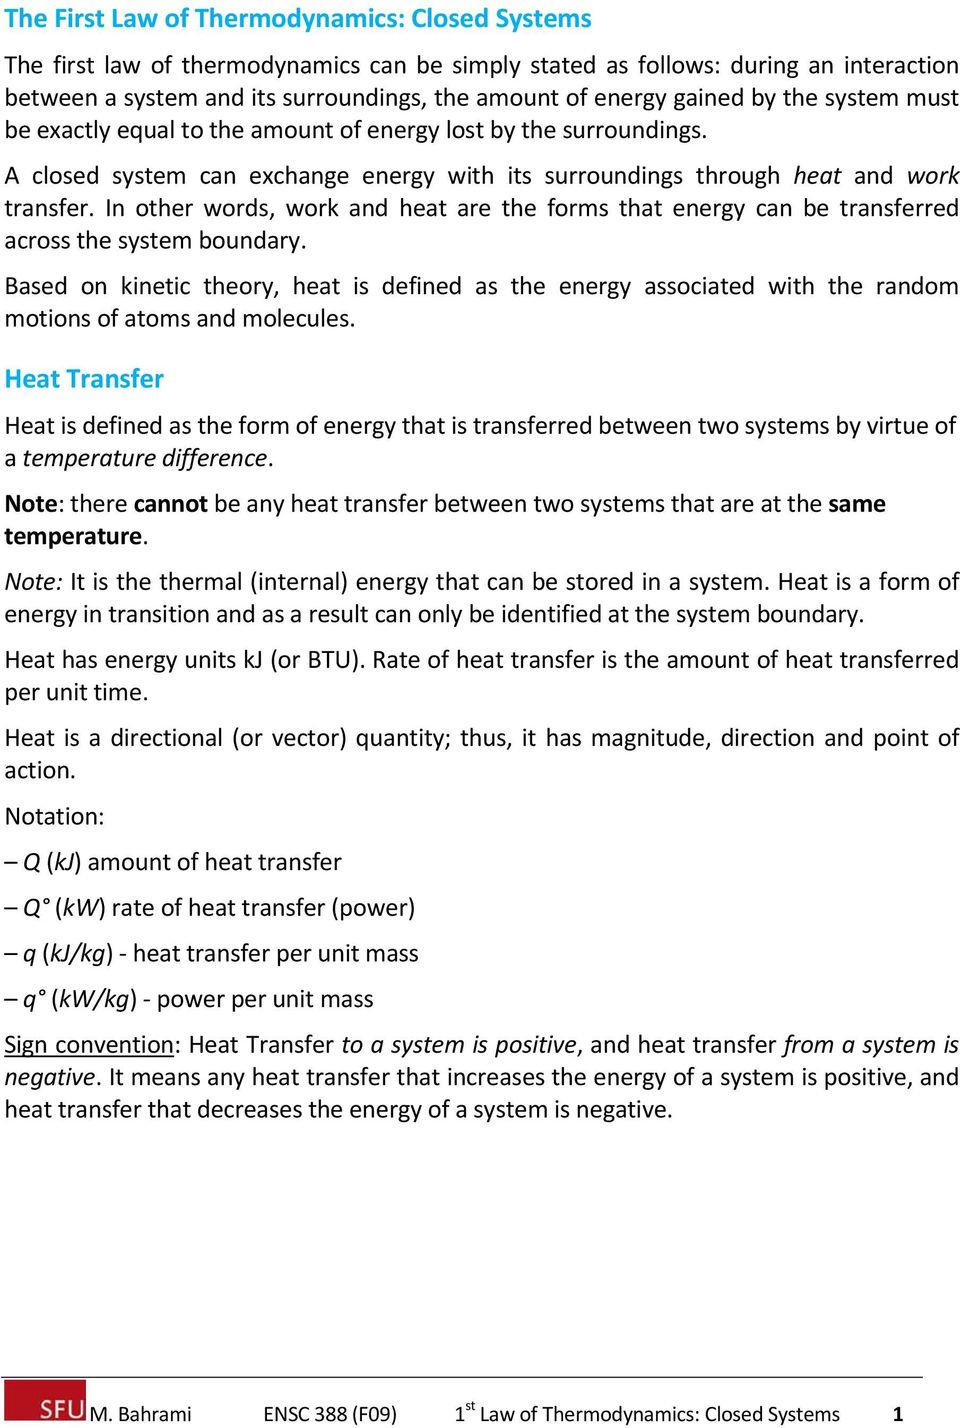 In other words, work and heat are the forms that energy can be transferred across the system boundary.